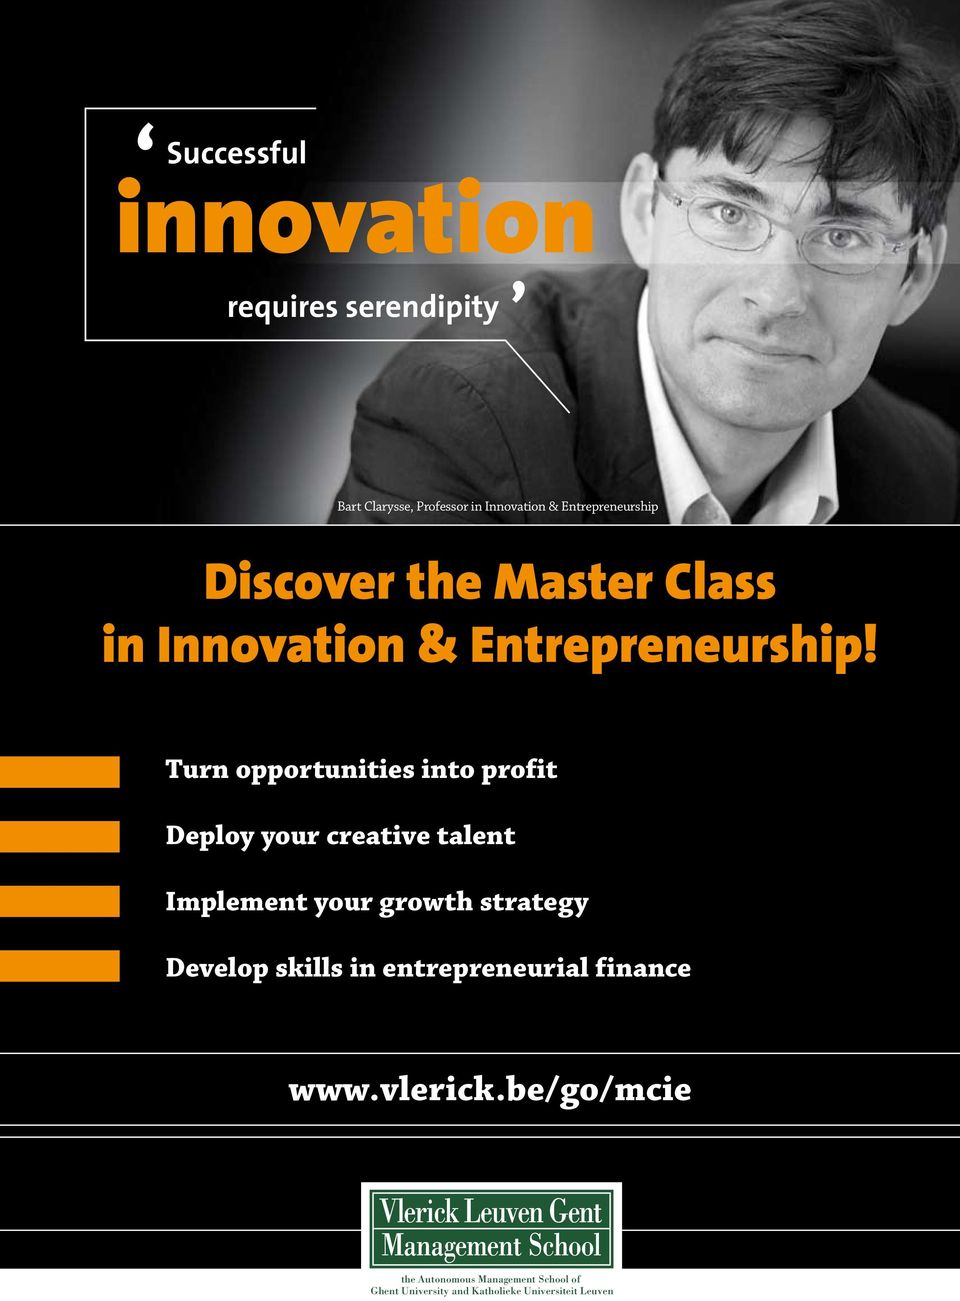 growth strategy Develop skills in entrepreneurial finance www.vlerick.